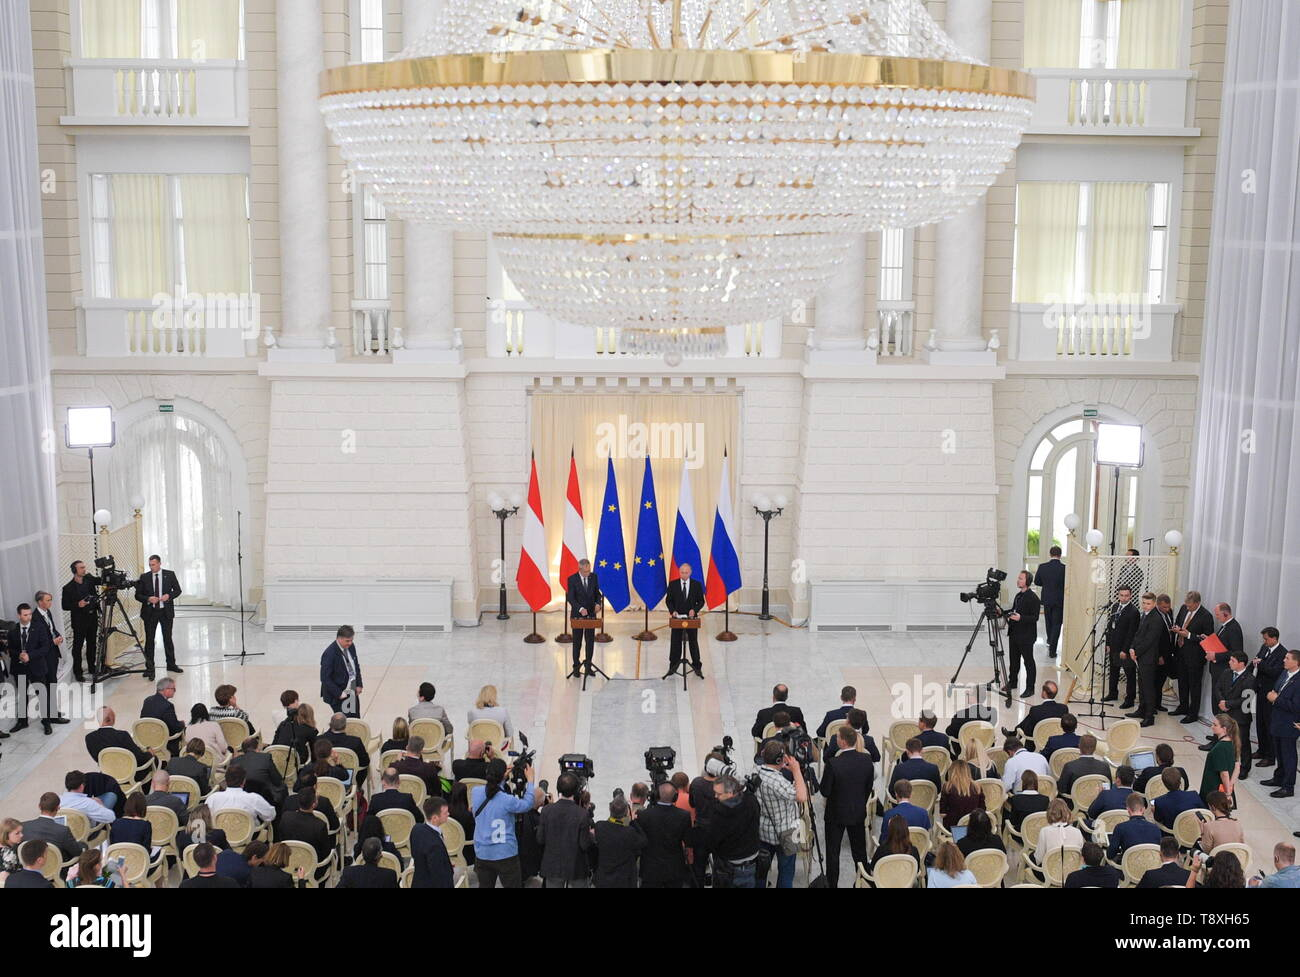 Sochi, Russia. 15th May, 2019. SOCHI, RUSSIA - MAY 15, 2019: Austria's President Alexander Van der Bellen and Russia's President Vladimir Putin (L-R back) at a joint press conference following their meeting at the Rus health resort. Alexei Druzhinin/Russian Presidential Press and Information Office/TASS Credit: ITAR-TASS News Agency/Alamy Live News - Stock Image